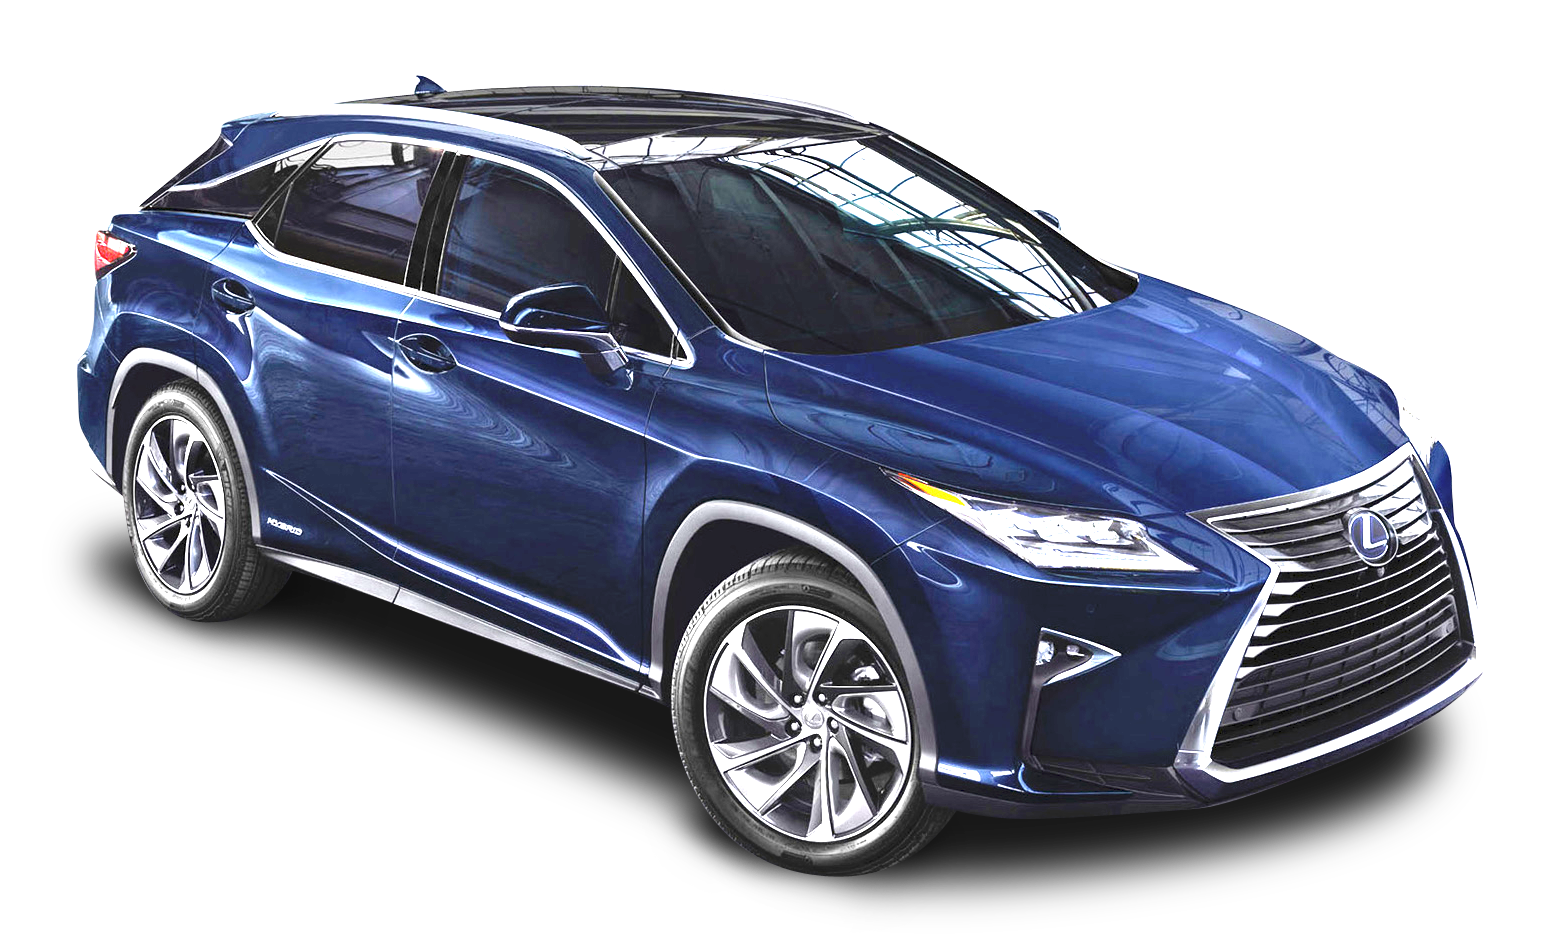 Lexus RX 450h Blue Car